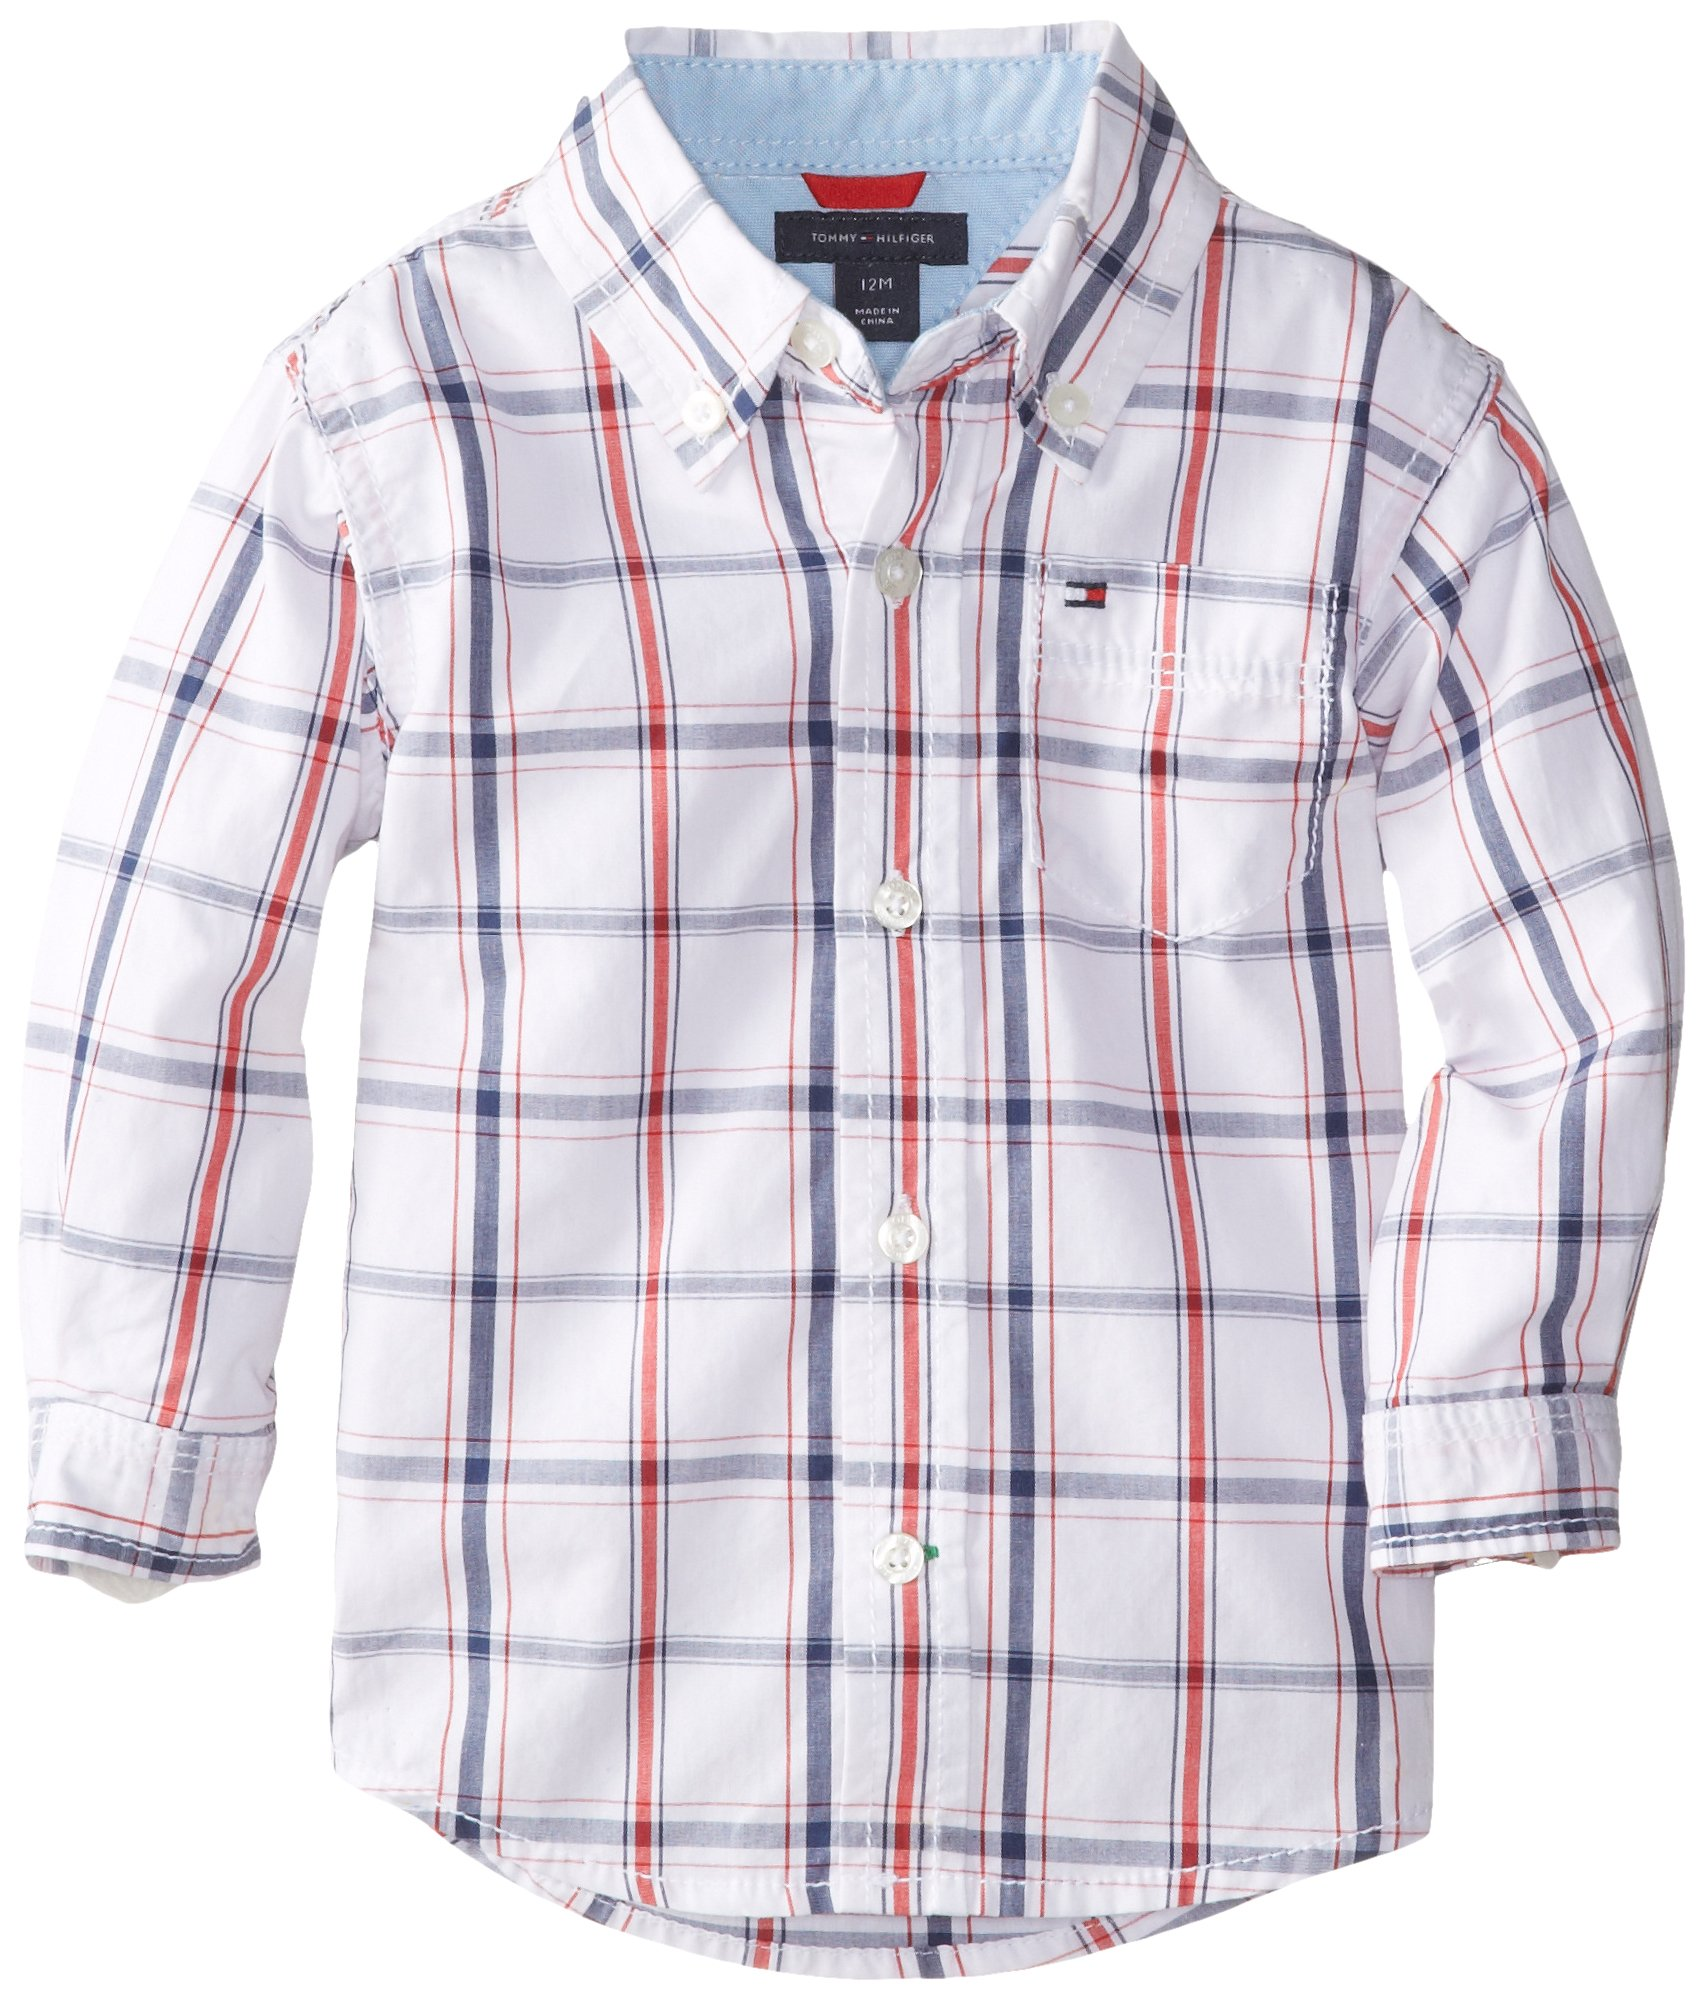 Tommy Hilfiger Baby Boys' Samuel Plaid Shirt, White, 24 Months by Tommy Hilfiger